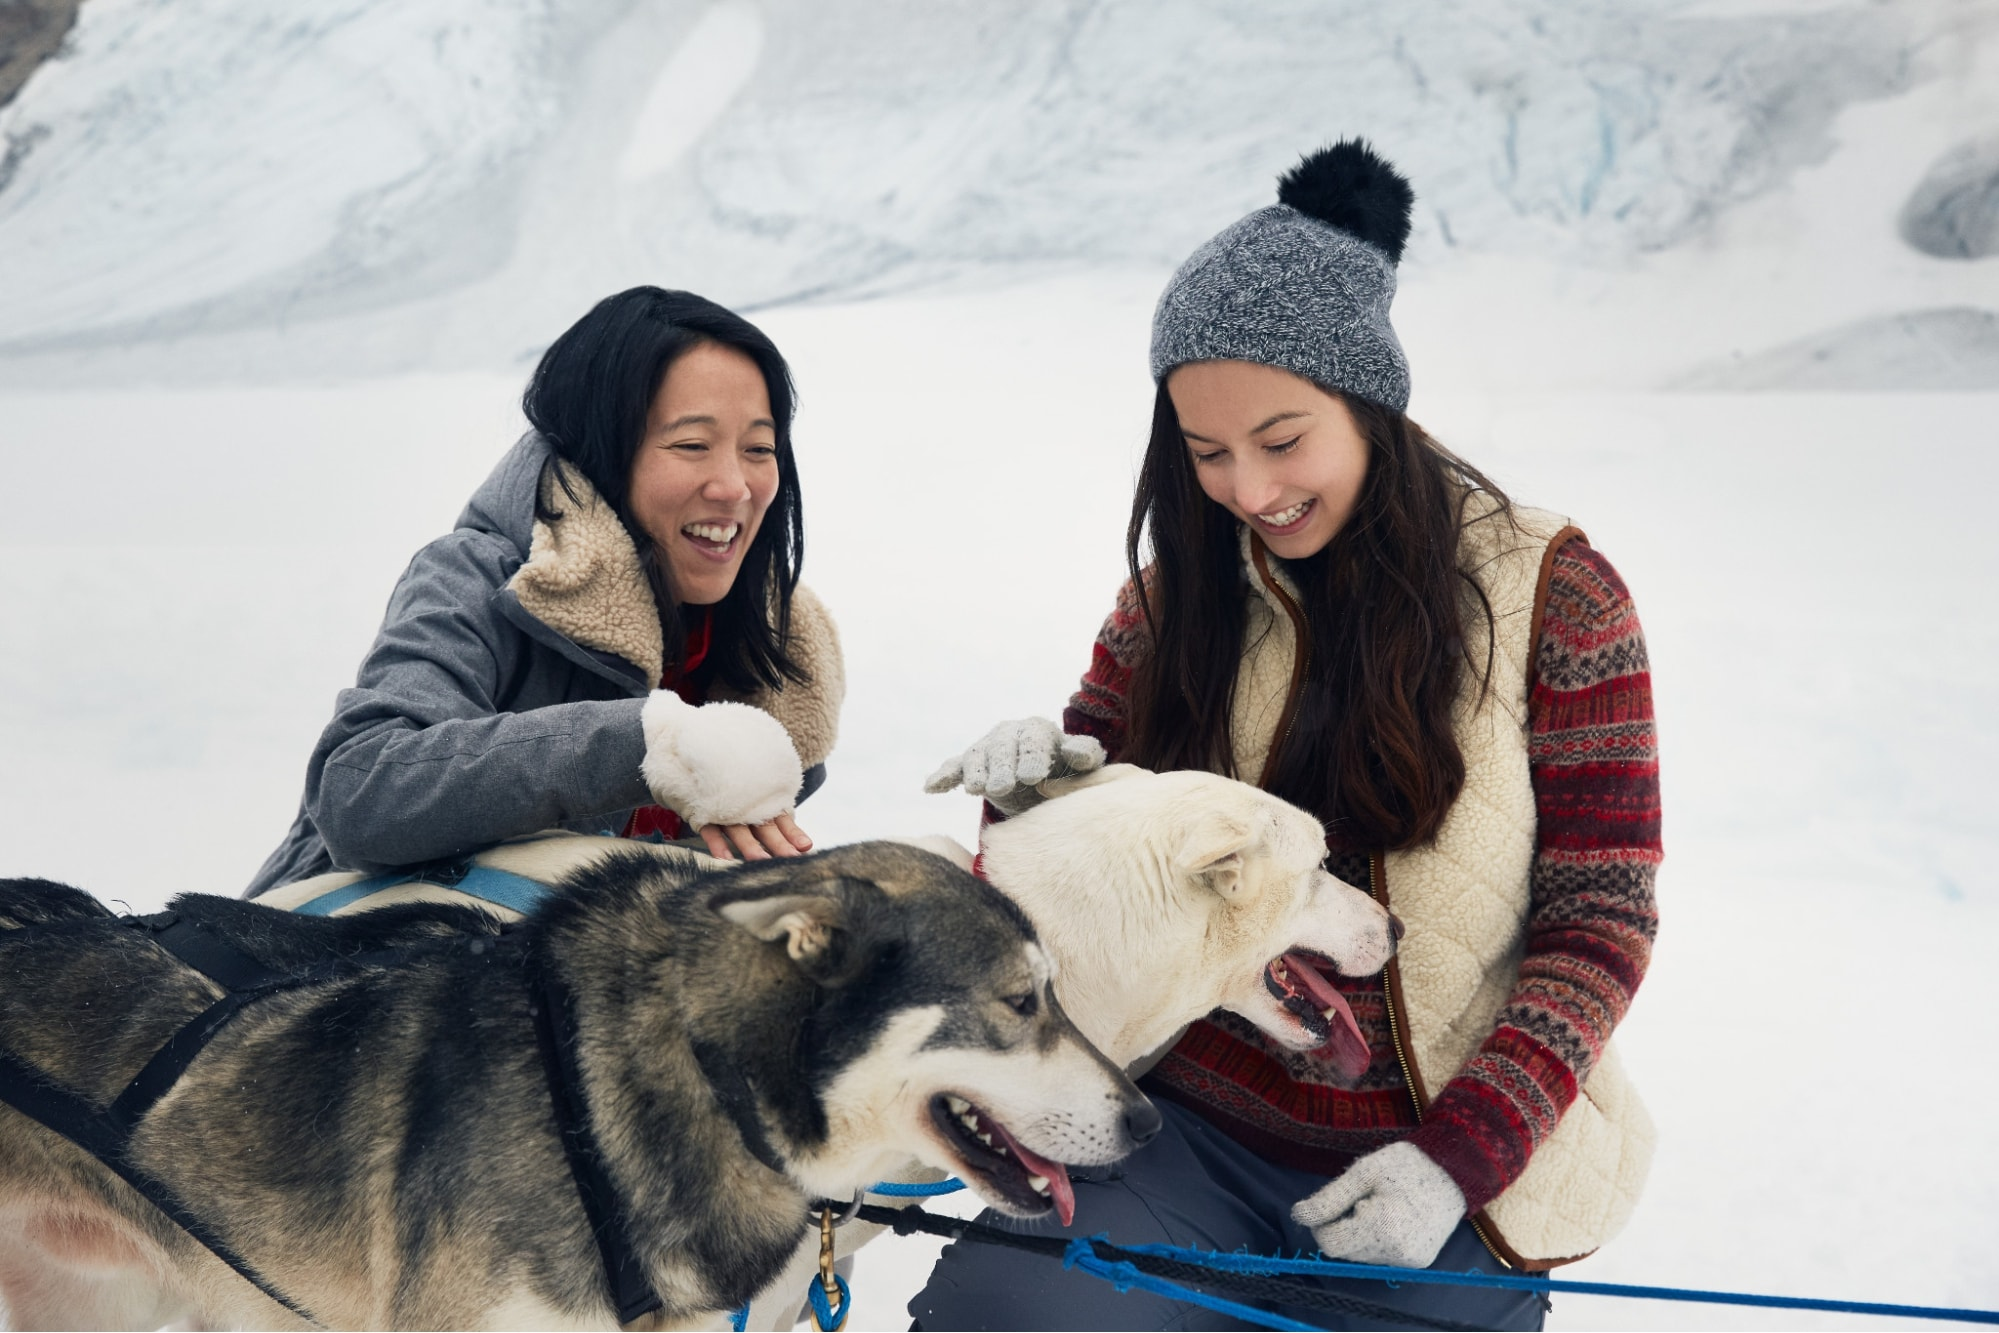 Dog Sledding on the Mendenhall Glacier, Alaska